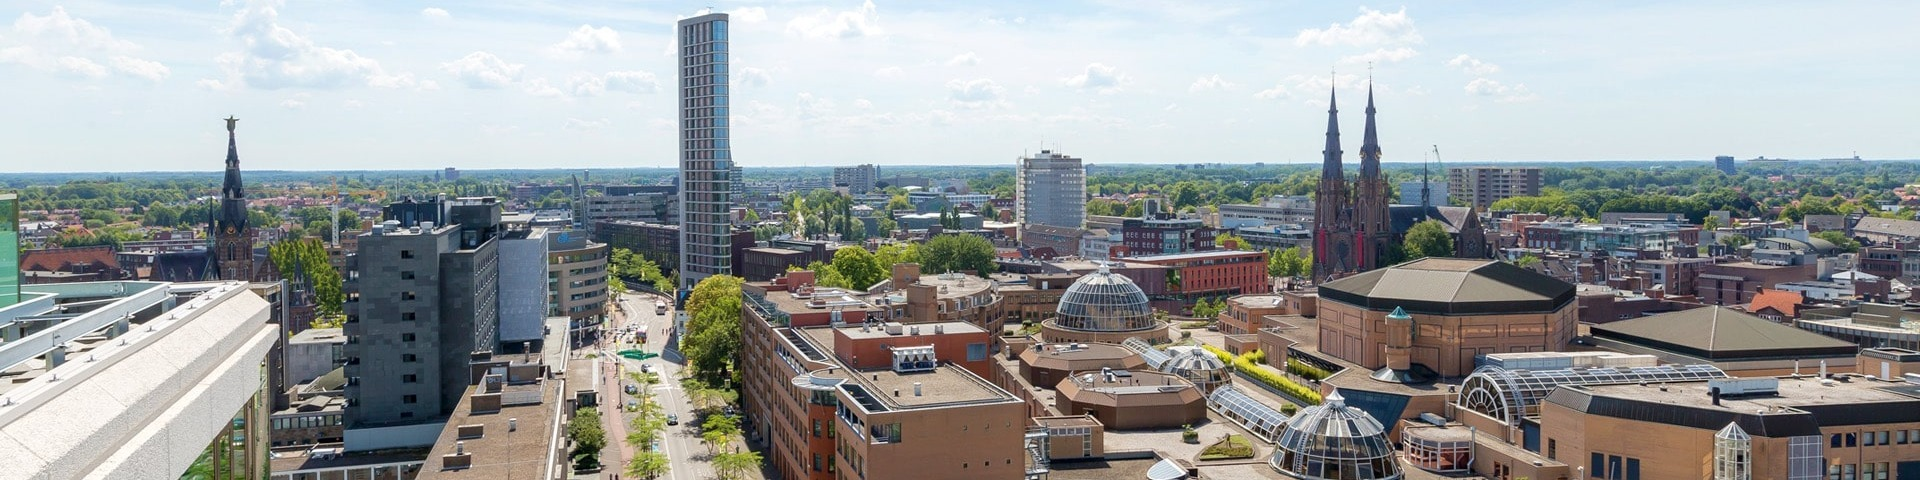 Eindhoven city view